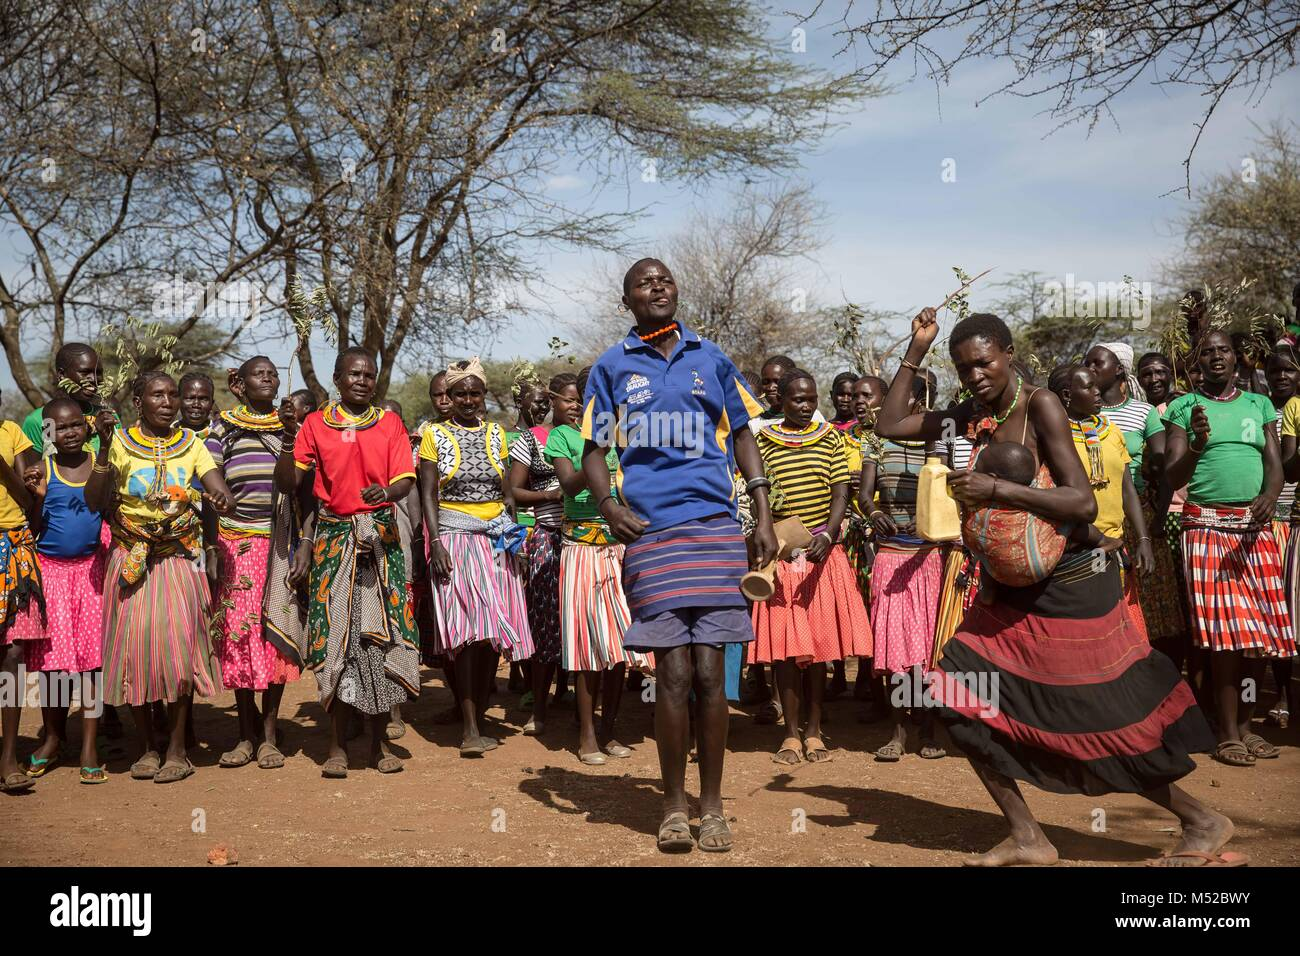 A man and woman from the Pokot tribe dance in front of a line of females close to Katobua village in Karamoja, northern - Stock Image